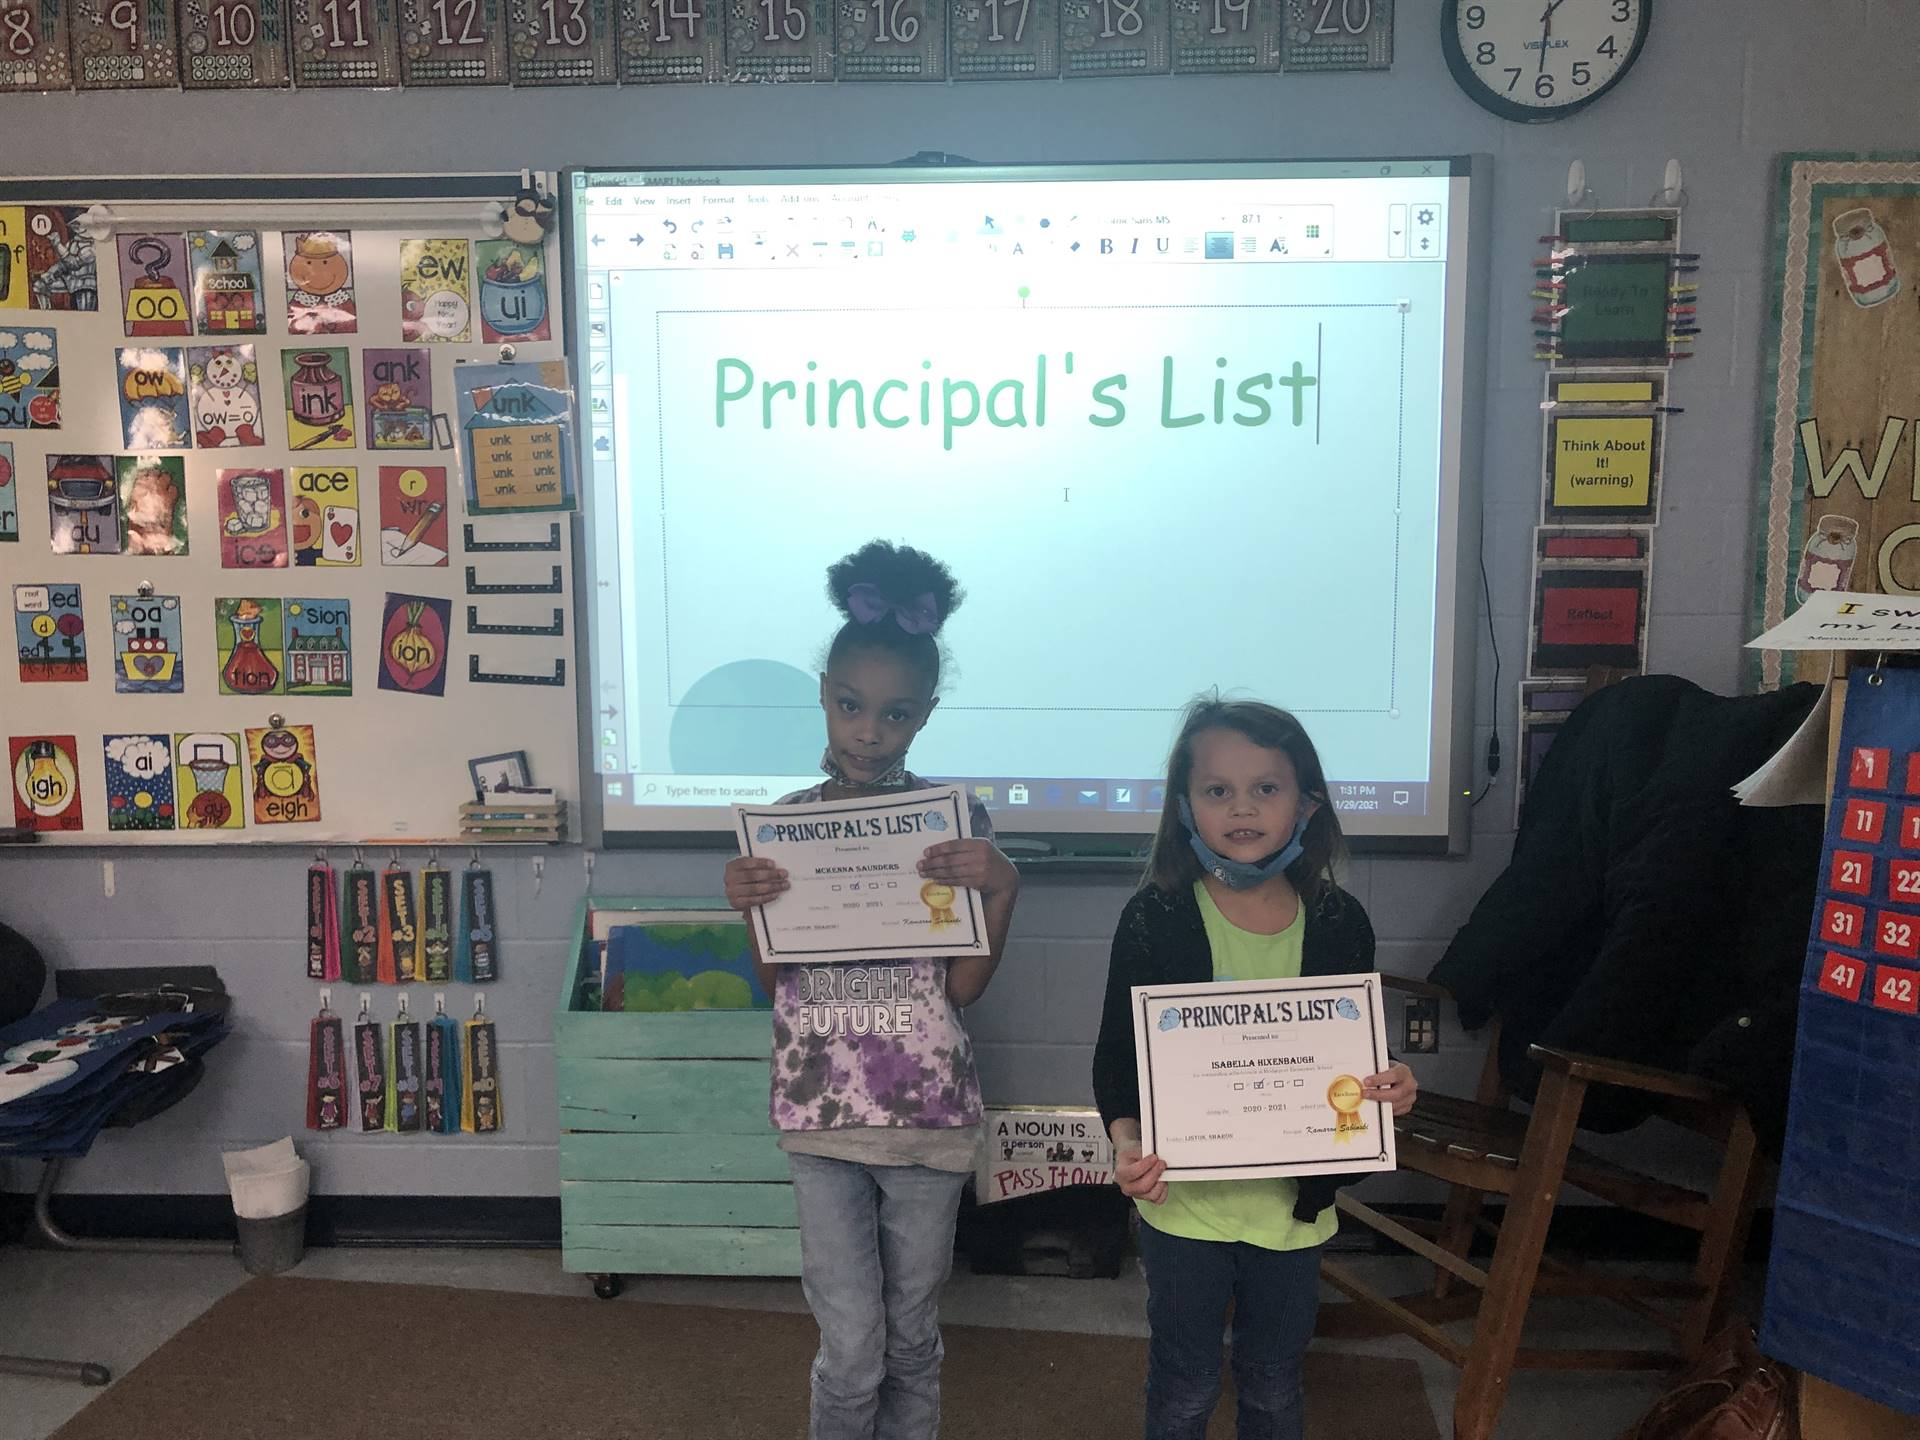 Mrs. Liston's Principal's List